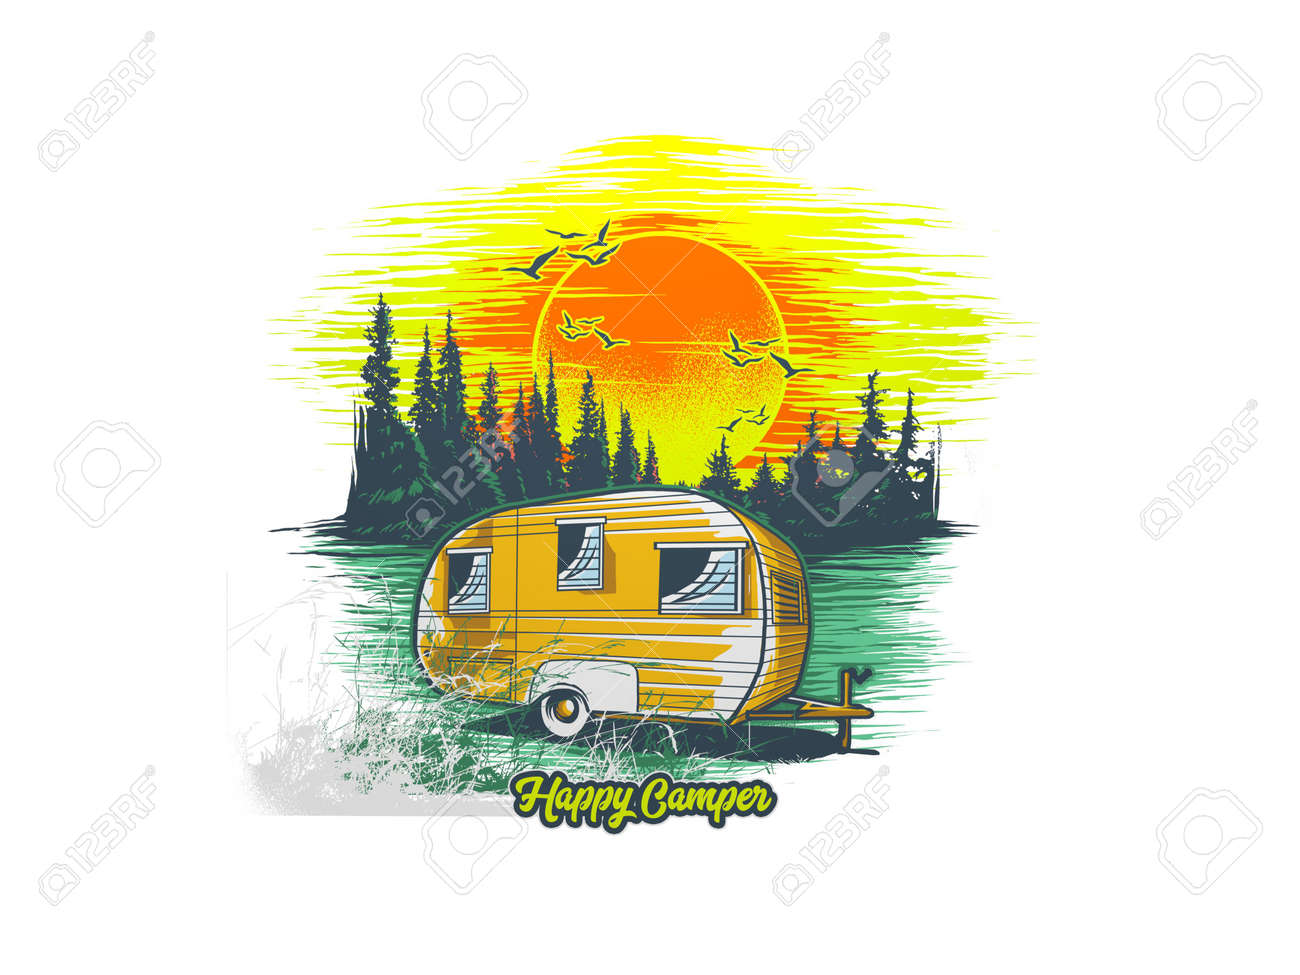 multiple camping objects and logo on white background - 3d rendering - 155785737